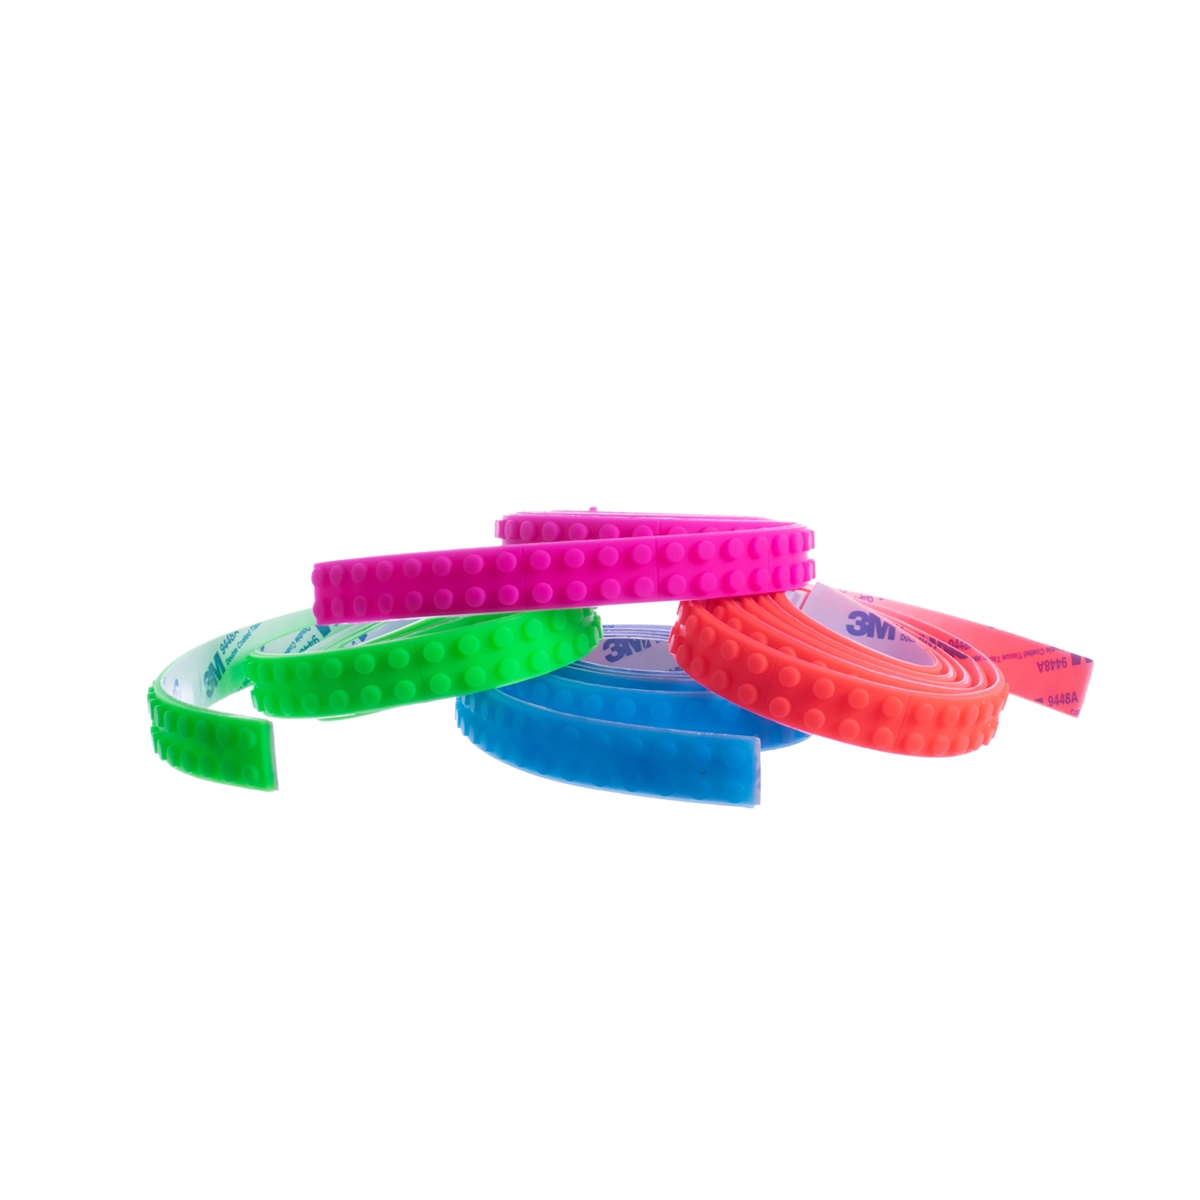 3m Building Block Tape Perfect For Sticking Legos Anywhere